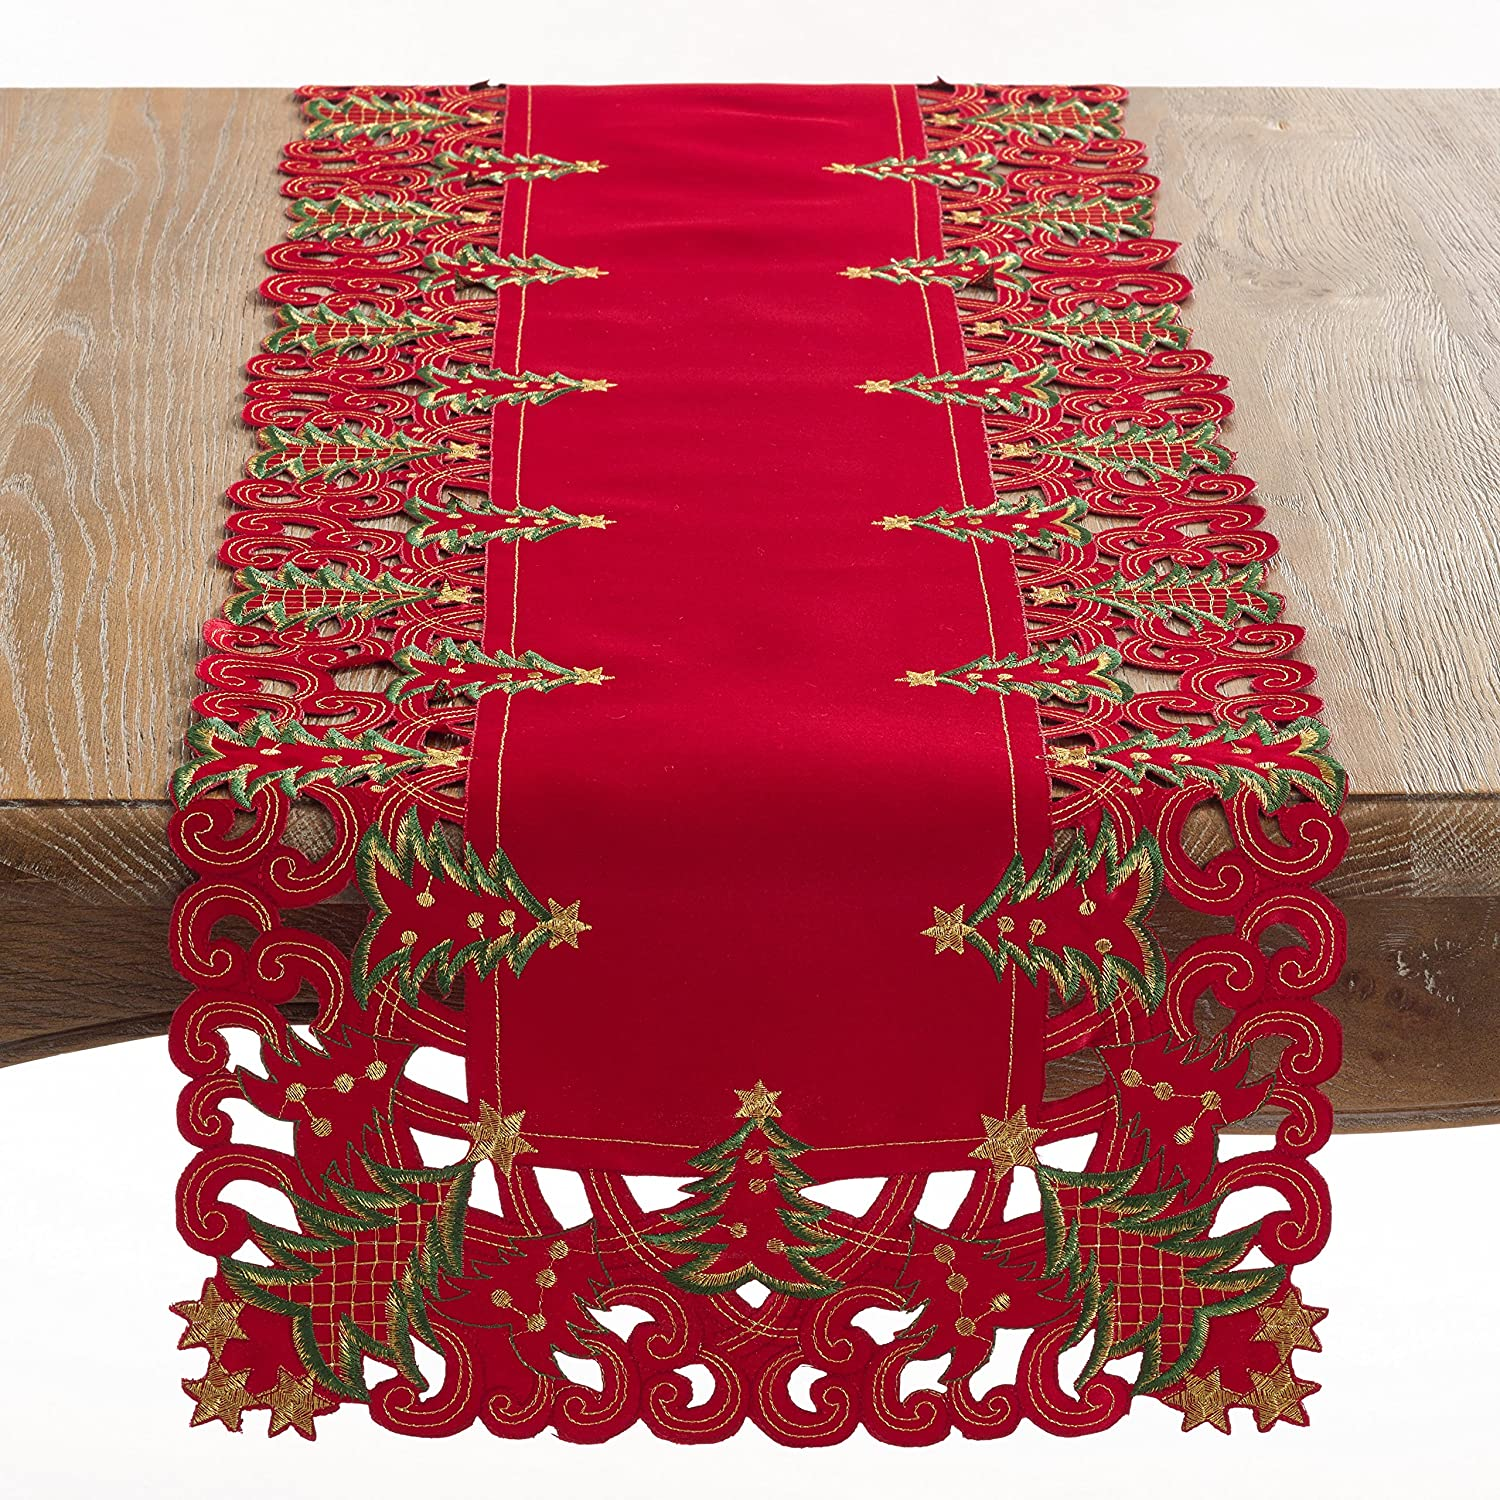 """SARO LIFESTYLE Pandoro Collection Polyester Holiday Runner With Christmas Trees Design, 16"""" x 54"""", Red"""